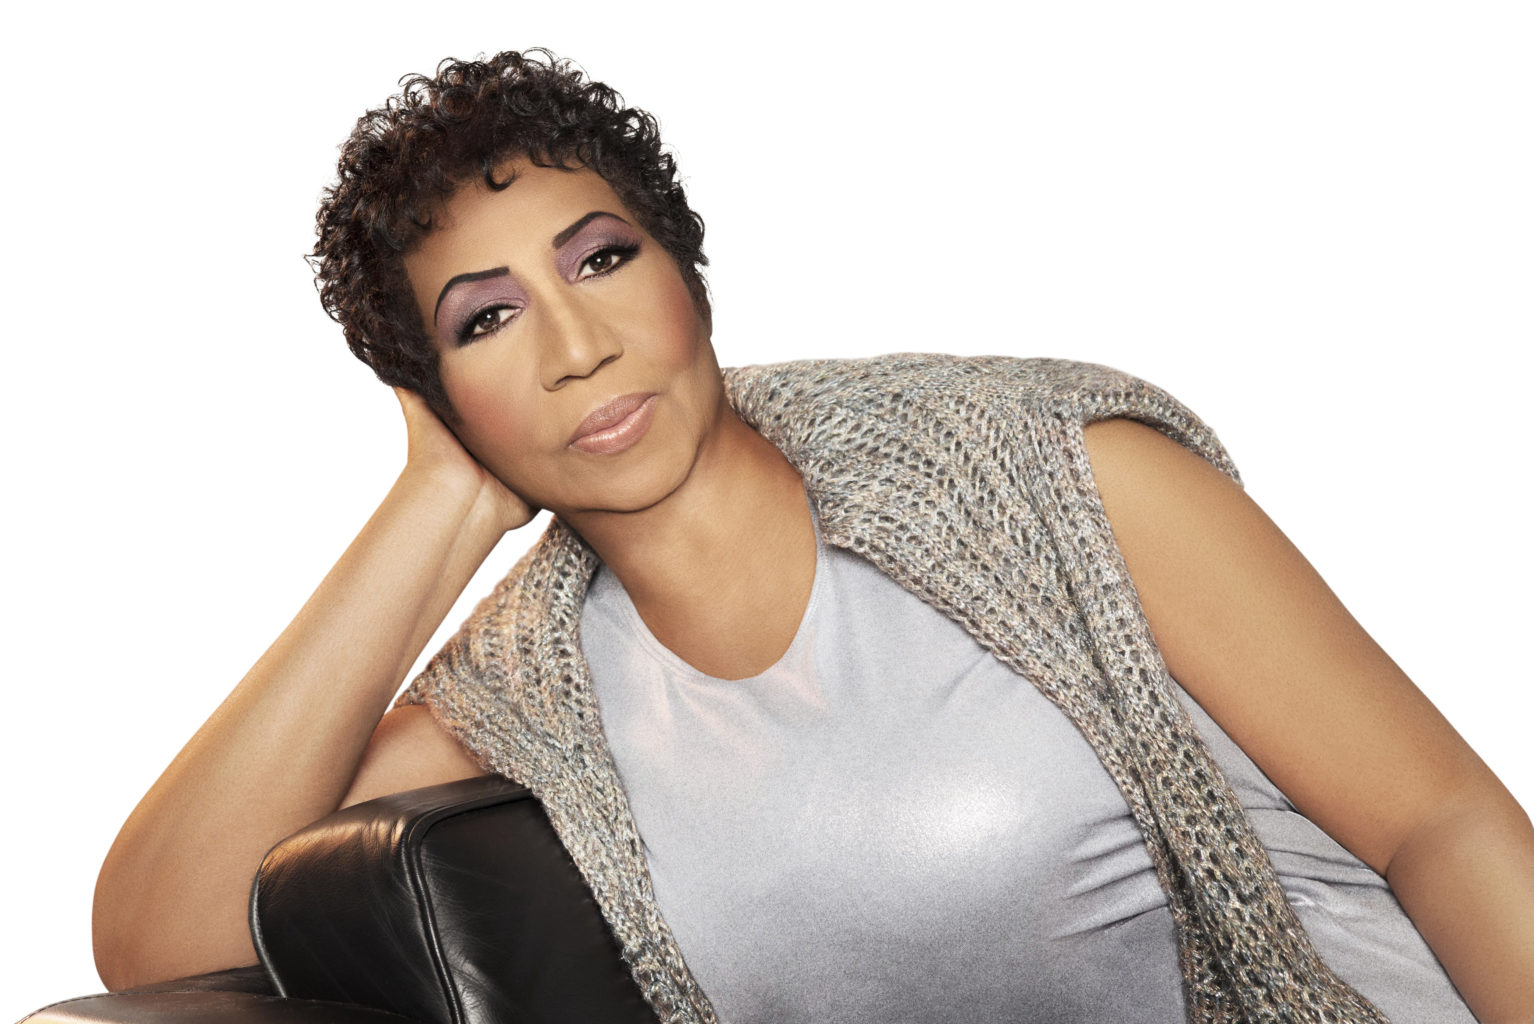 Queen of Soul Aretha Franklin was among the beloved artists who died in 2018. (Courtesy photo)